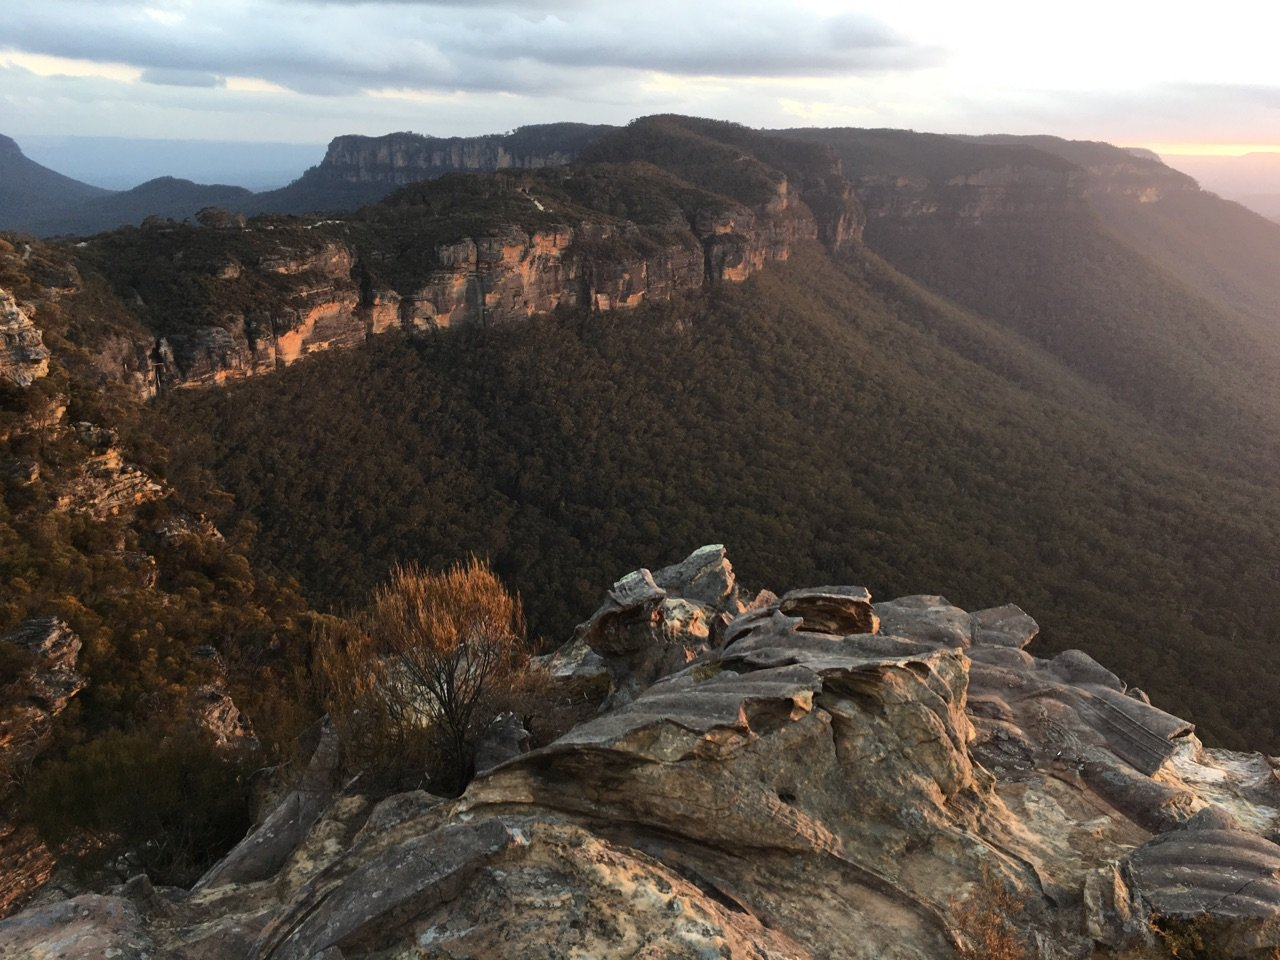 katoomba, hostel, backpackers, blue mountains, tent sites, flying fox backpackers, trekking, camping katoomba, camping, hostel, flat tent sites, camping area, nsw, australia